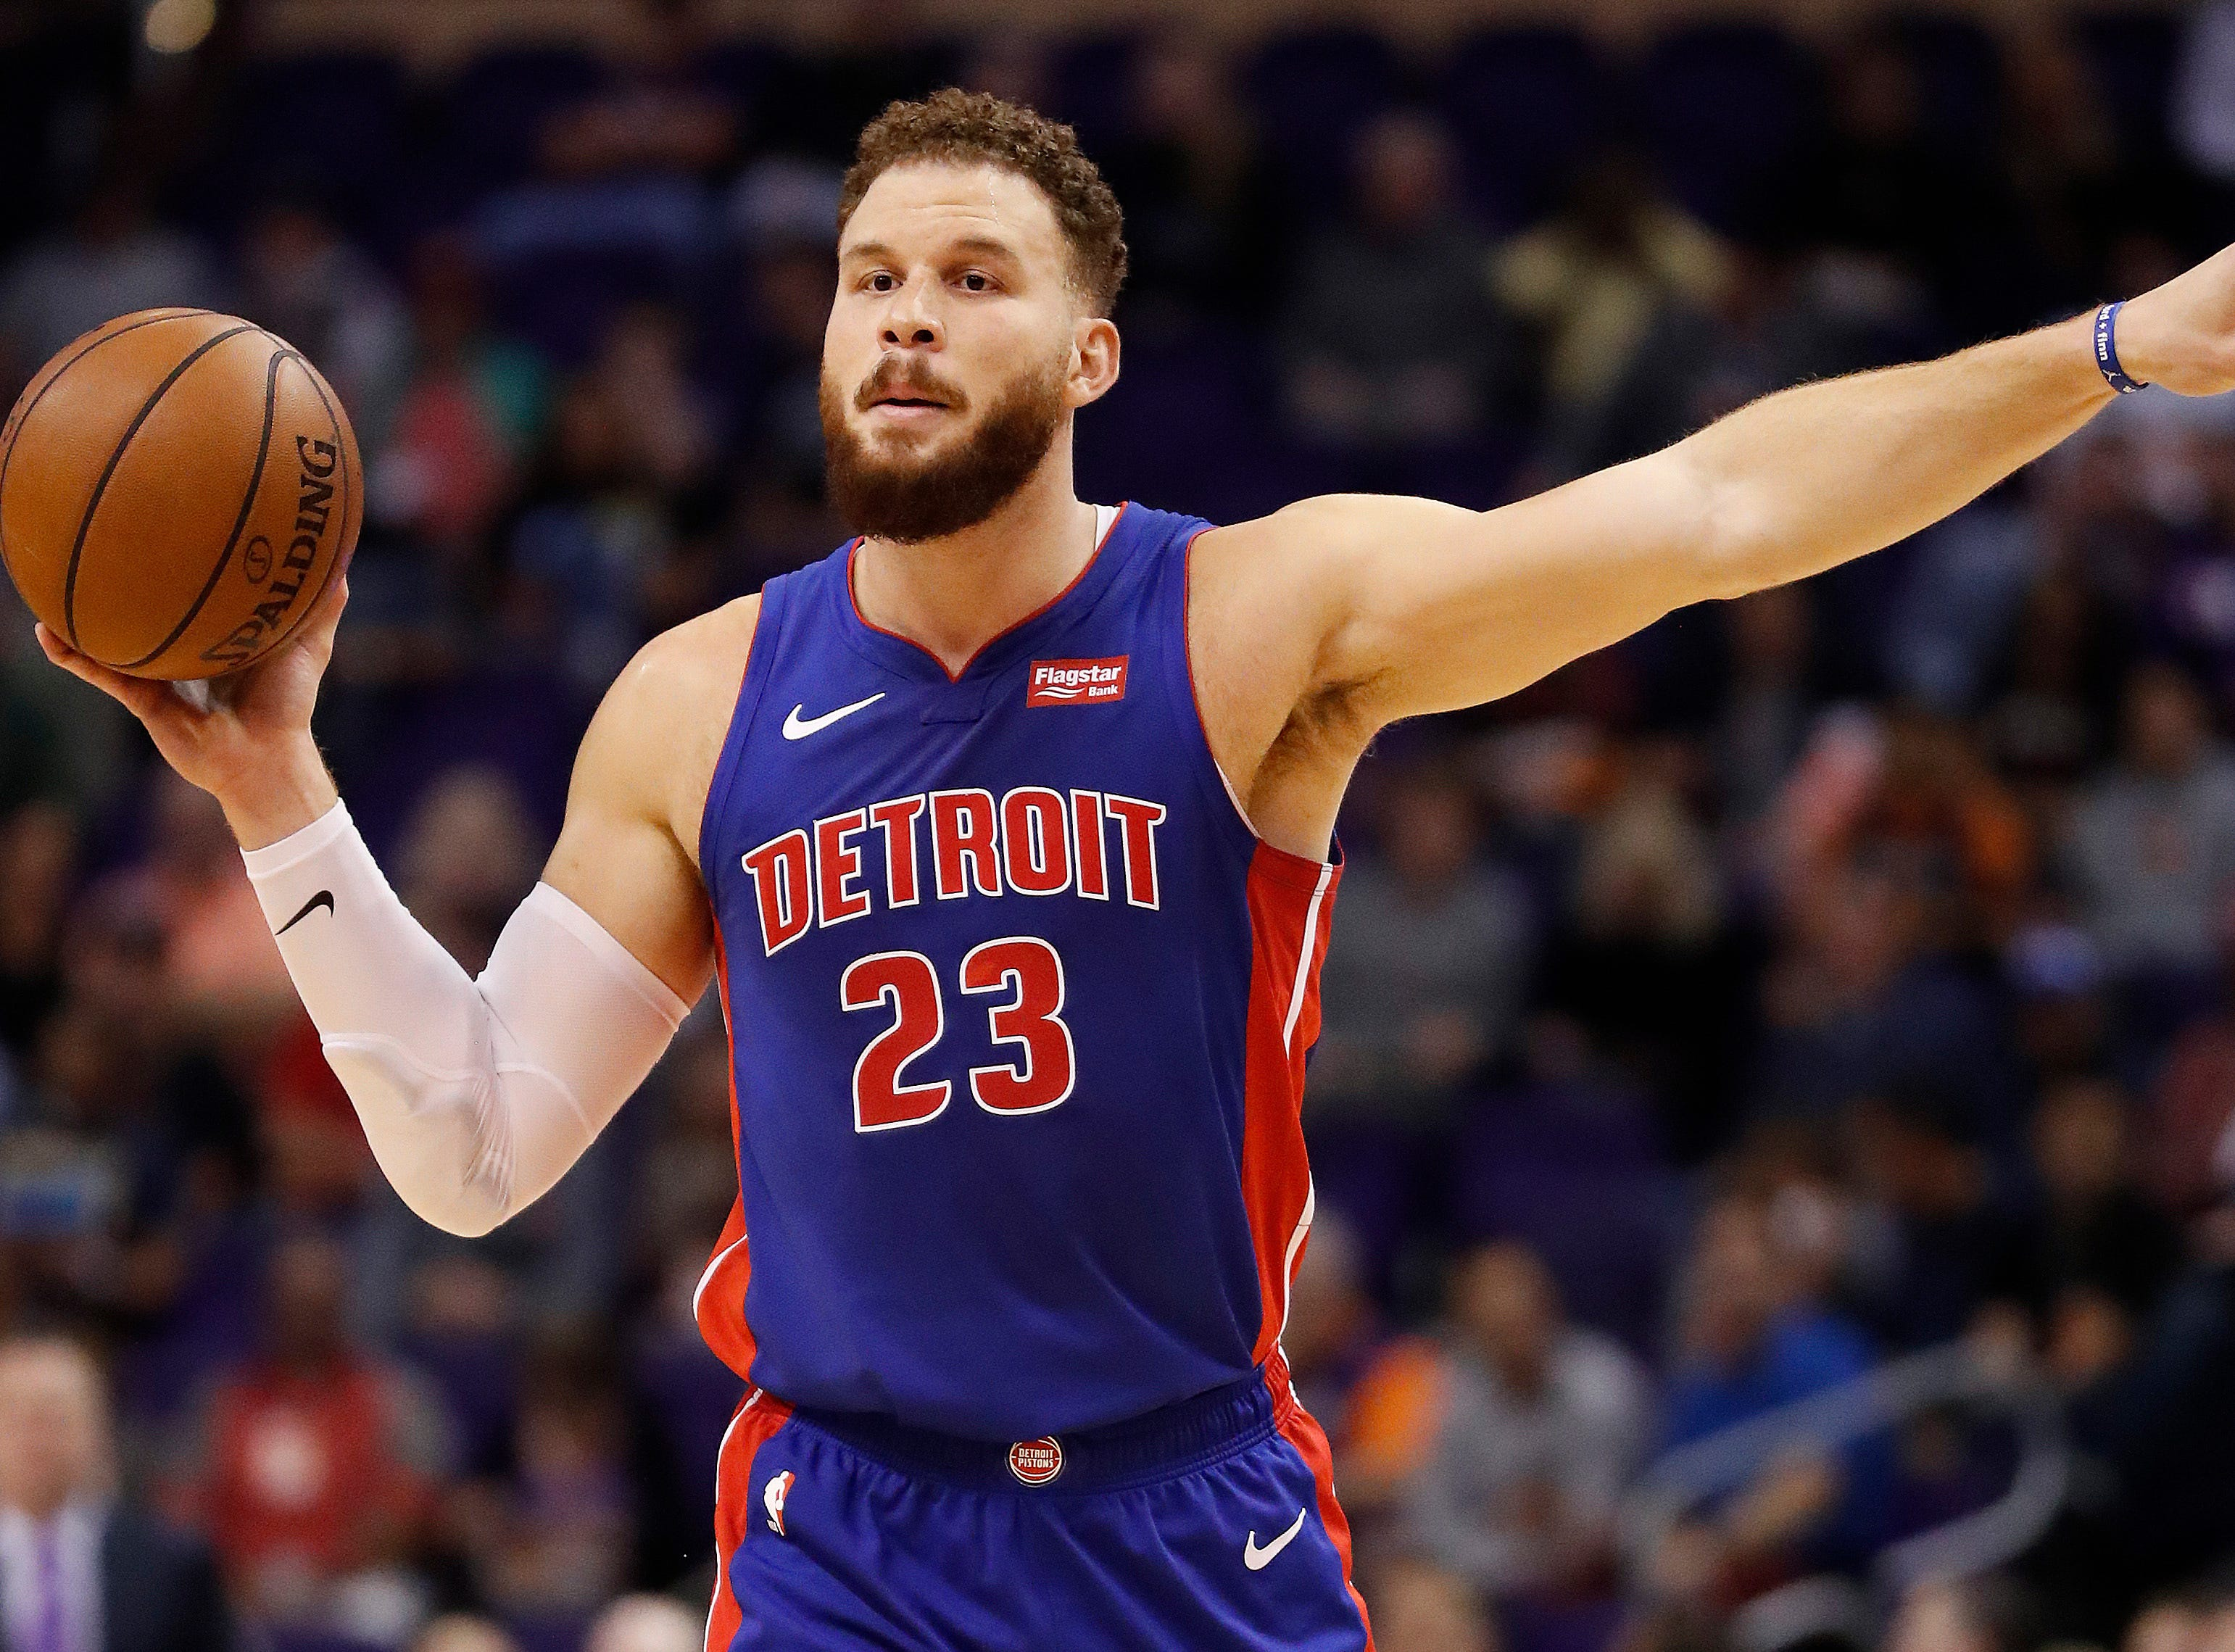 Detroit Pistons forward Blake Griffin (23) against the Phoenix Suns during the first half.